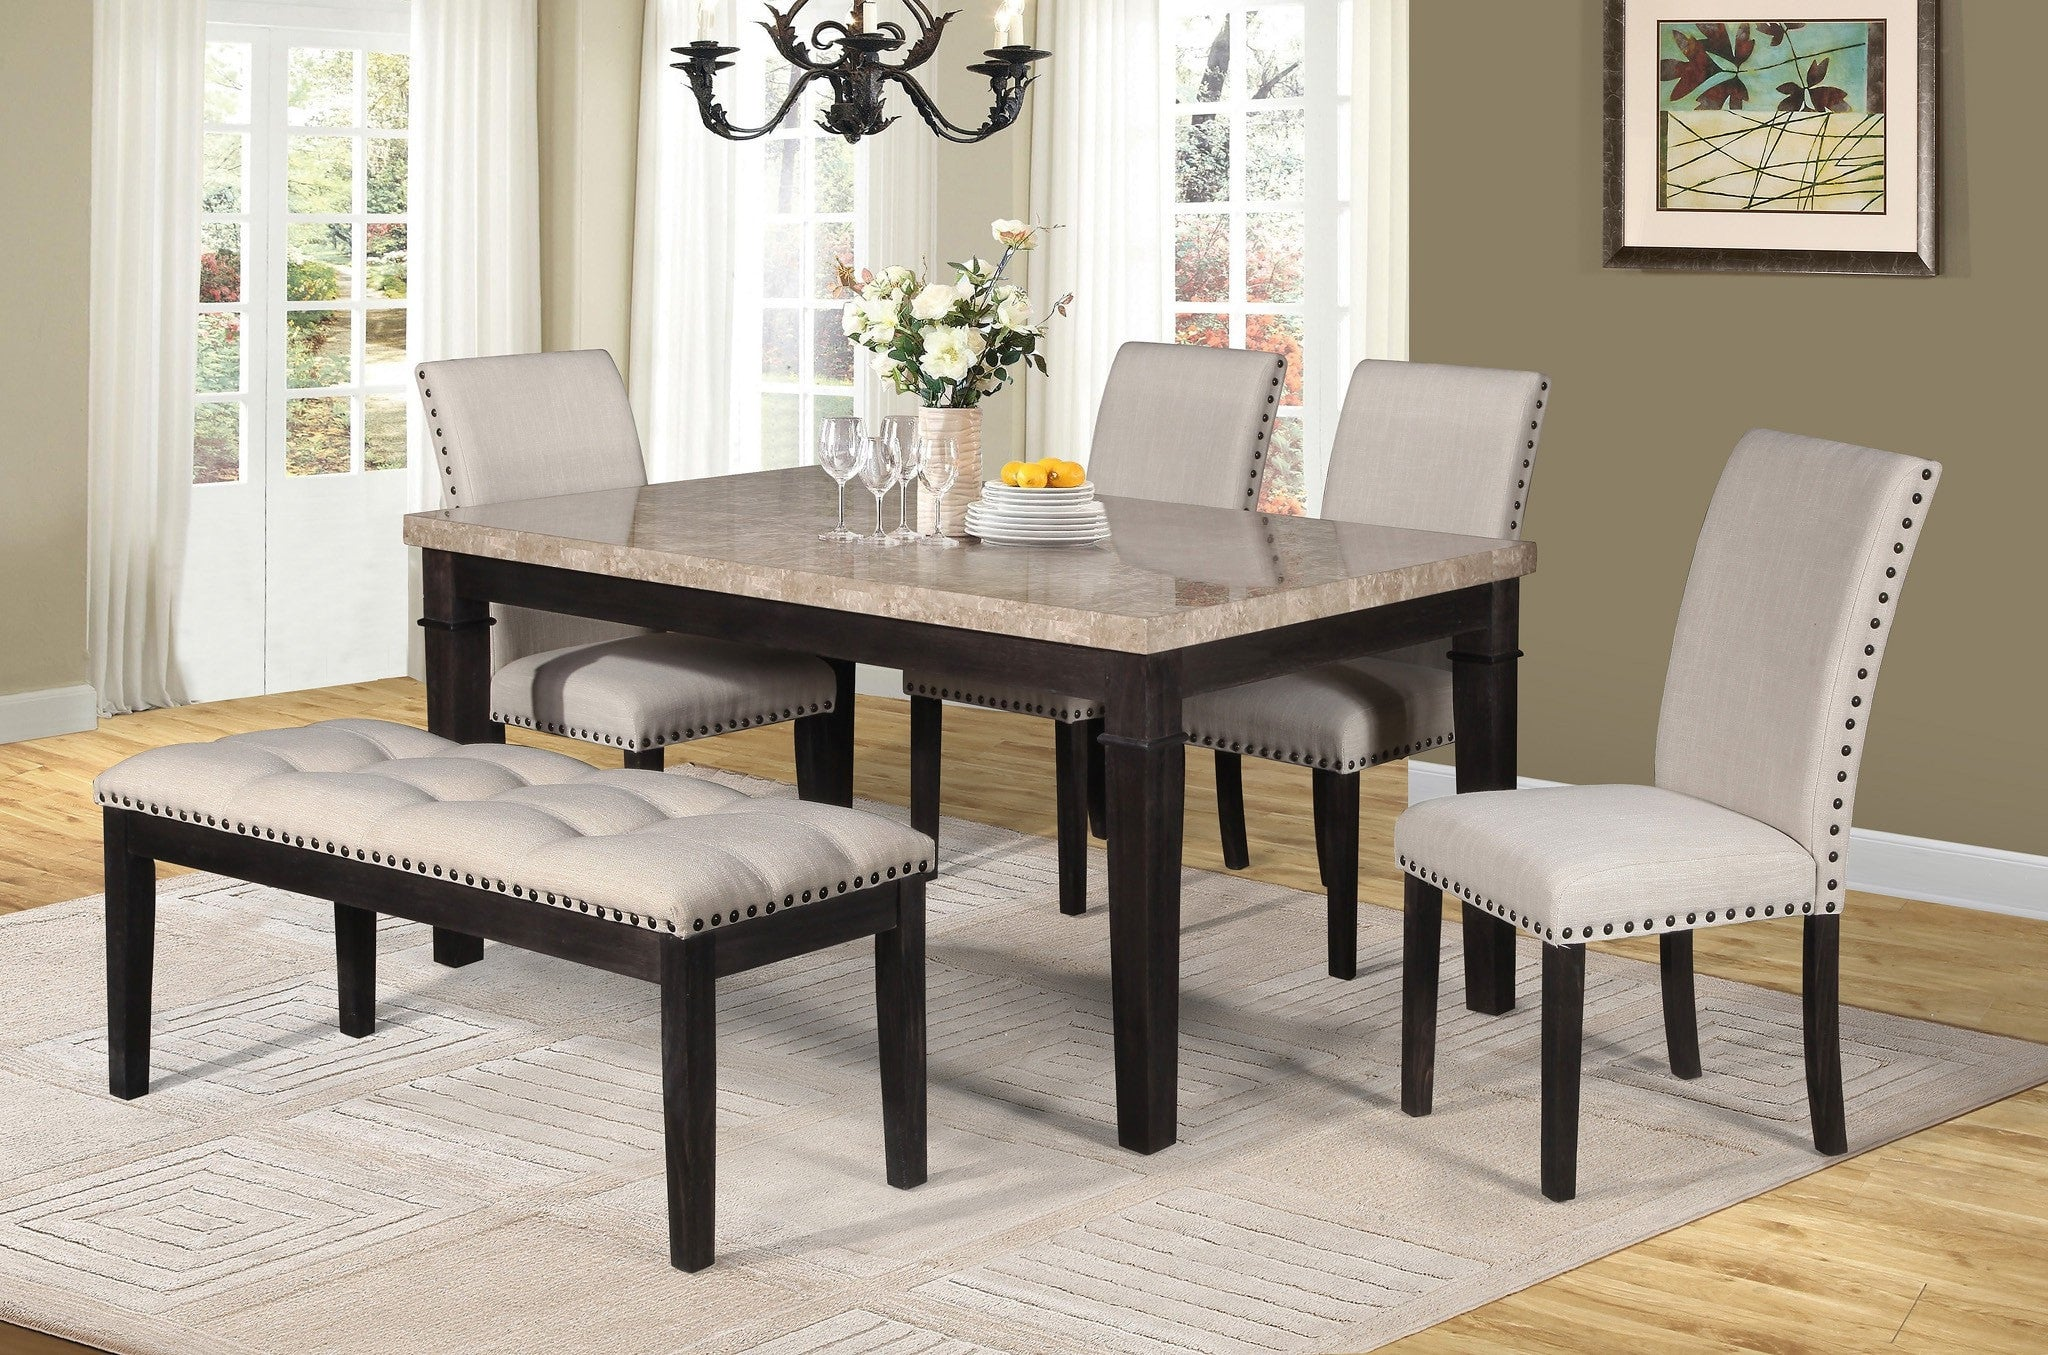 Sutton Dining Table Set Table 4 Chairs Bench 6 Pcs Set Afurniturecompany